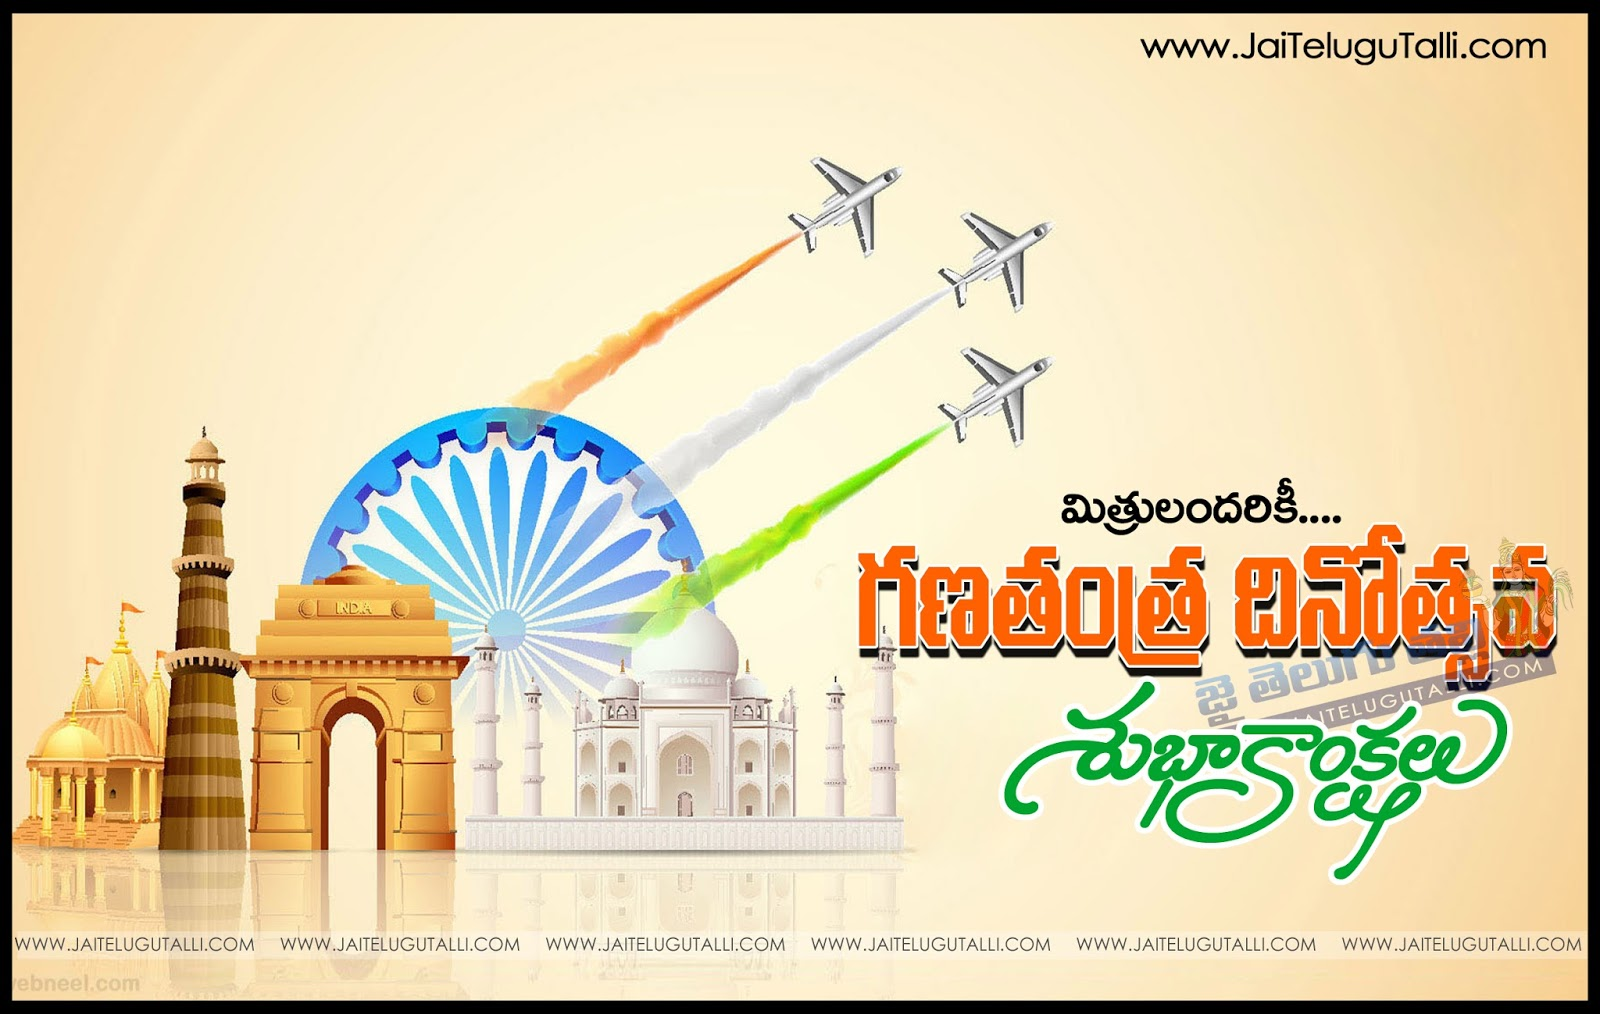 Republic day greetings pictures telugu quotes hd wallpapers best telugu republic day images and nice telugu republic m4hsunfo Image collections